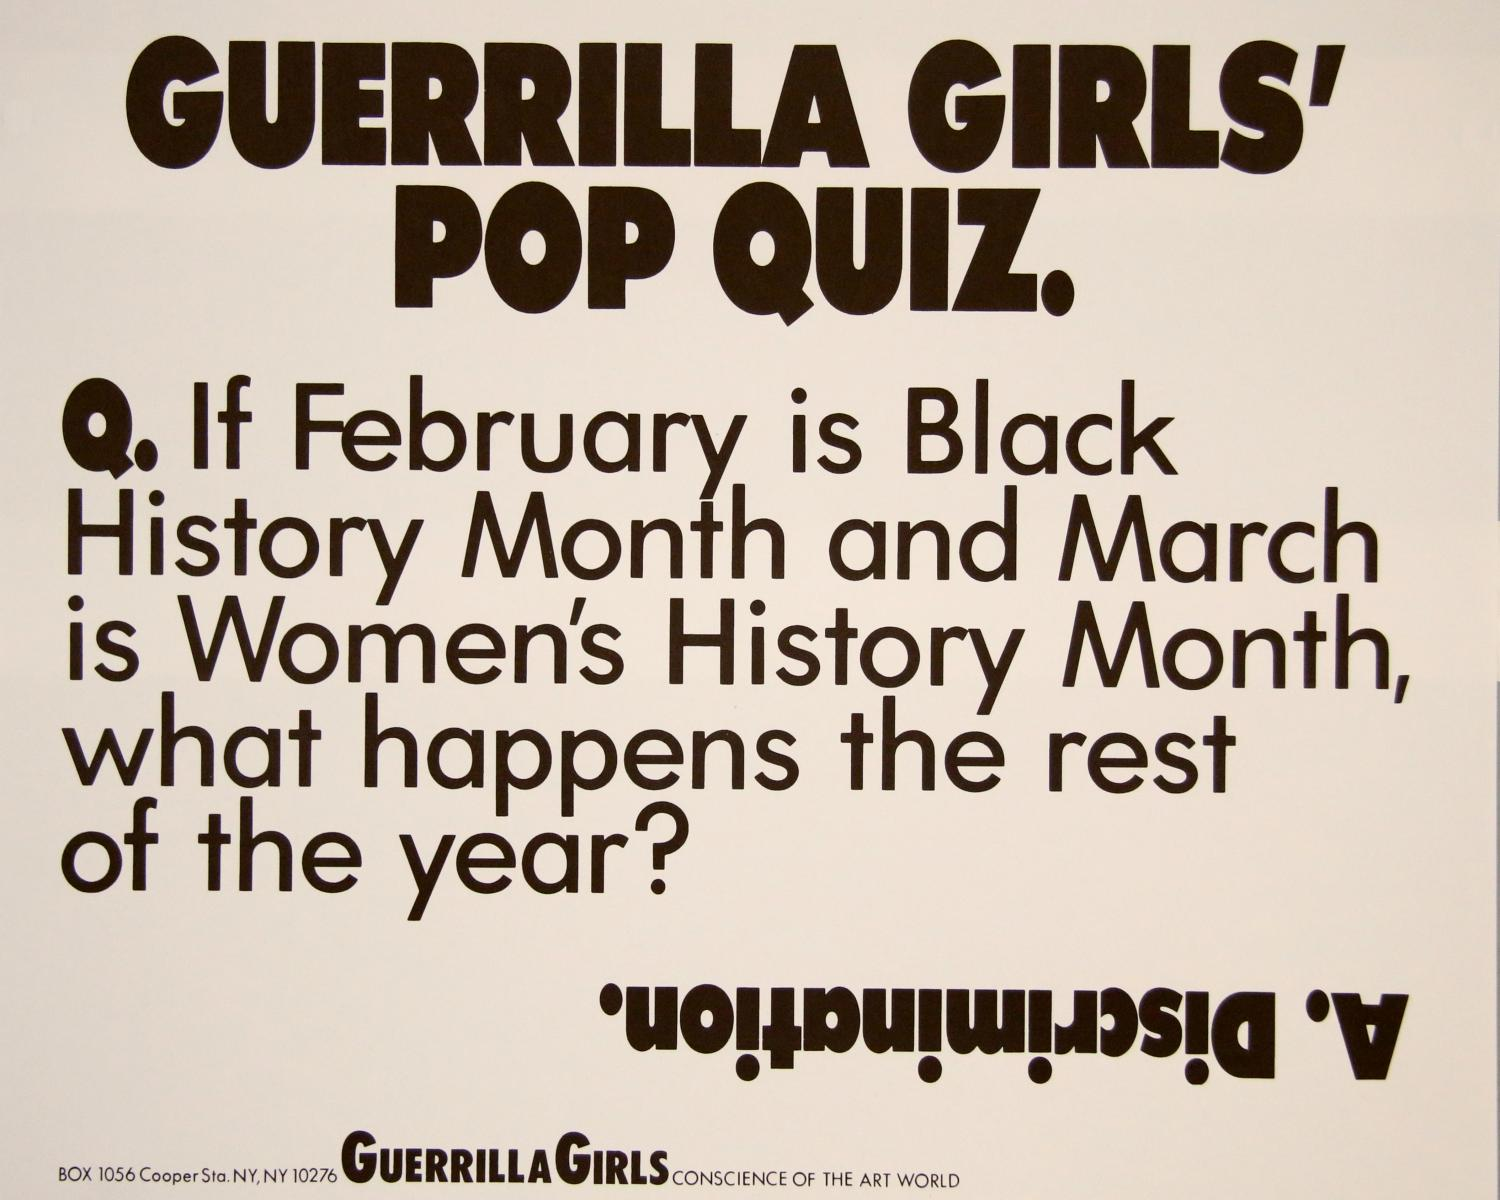 Guerrilla Girls (American, active since 1985), Guerrilla Girls' Pop Quiz from Portfolio Compleat, 1990. Digital print on paper. Museum purchase through the Art Acquisition Fund 2014-13-1.29